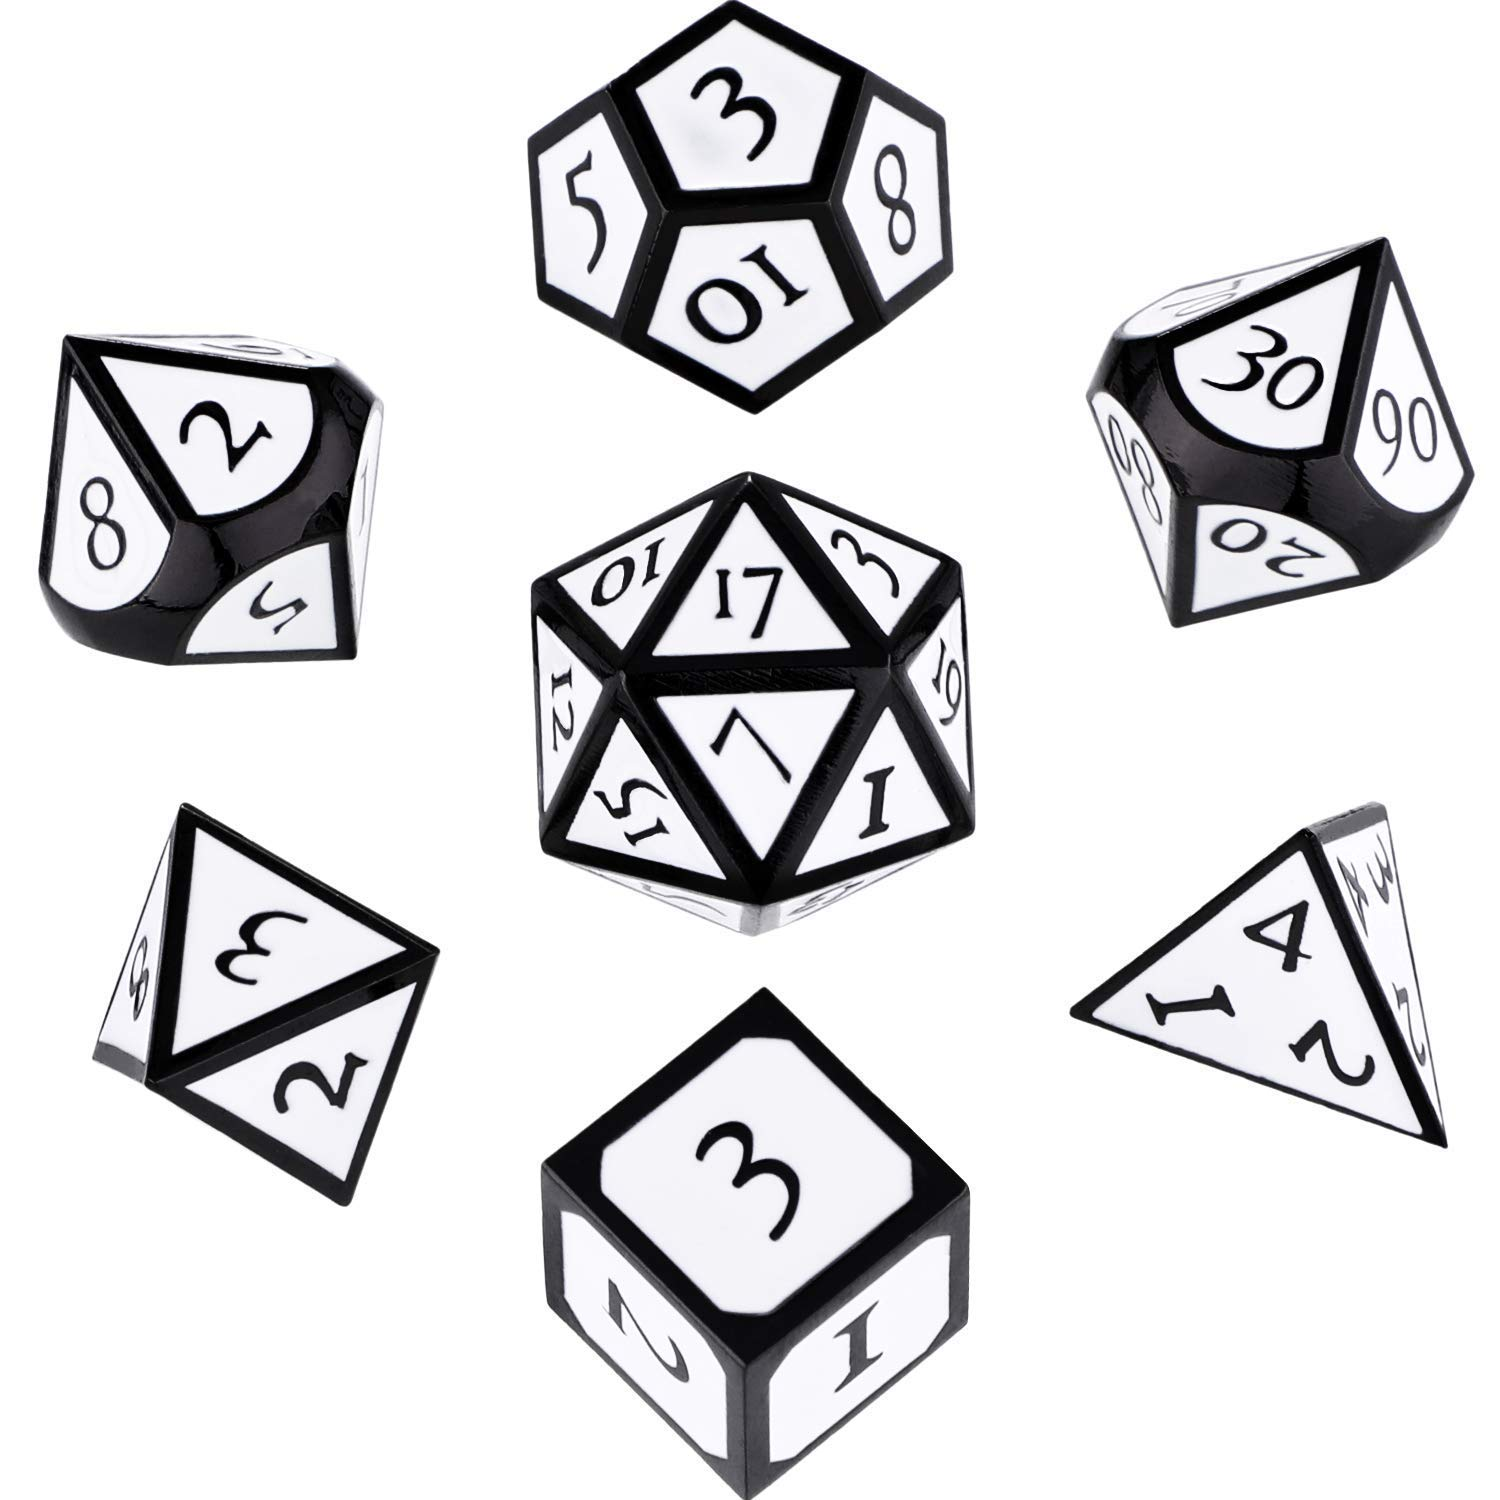 Hestya 7 Pieces Metal Dices Set DND Game Polyhedral Solid Metal D&D Dice  Set with Storage Bag and Zinc Alloy with Enamel for Role Playing Game.